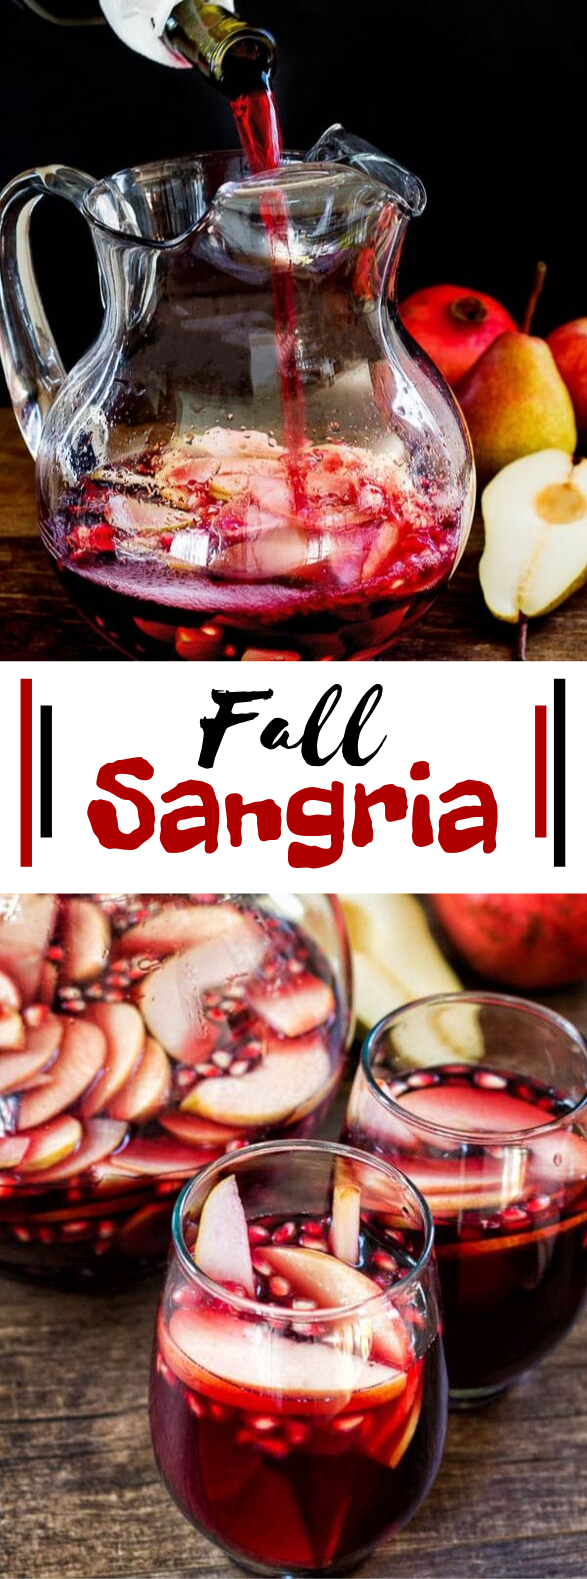 Fall Sangria #drinks #cocktails